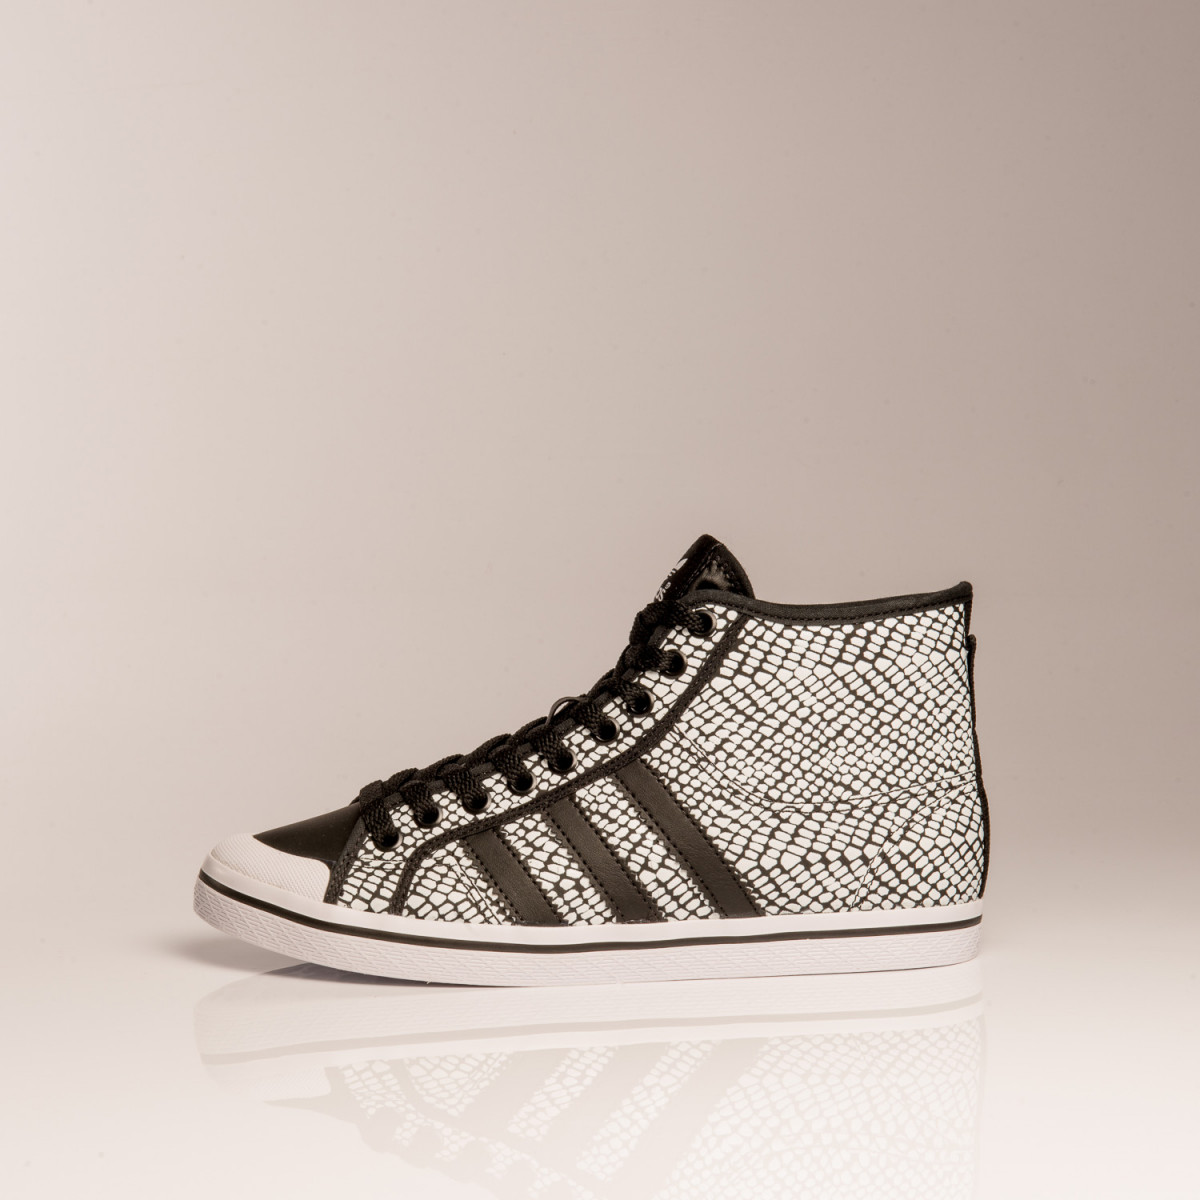 ZAPATILLAS ADIDAS ORIGINALS HONEY STRIPES MID W CR